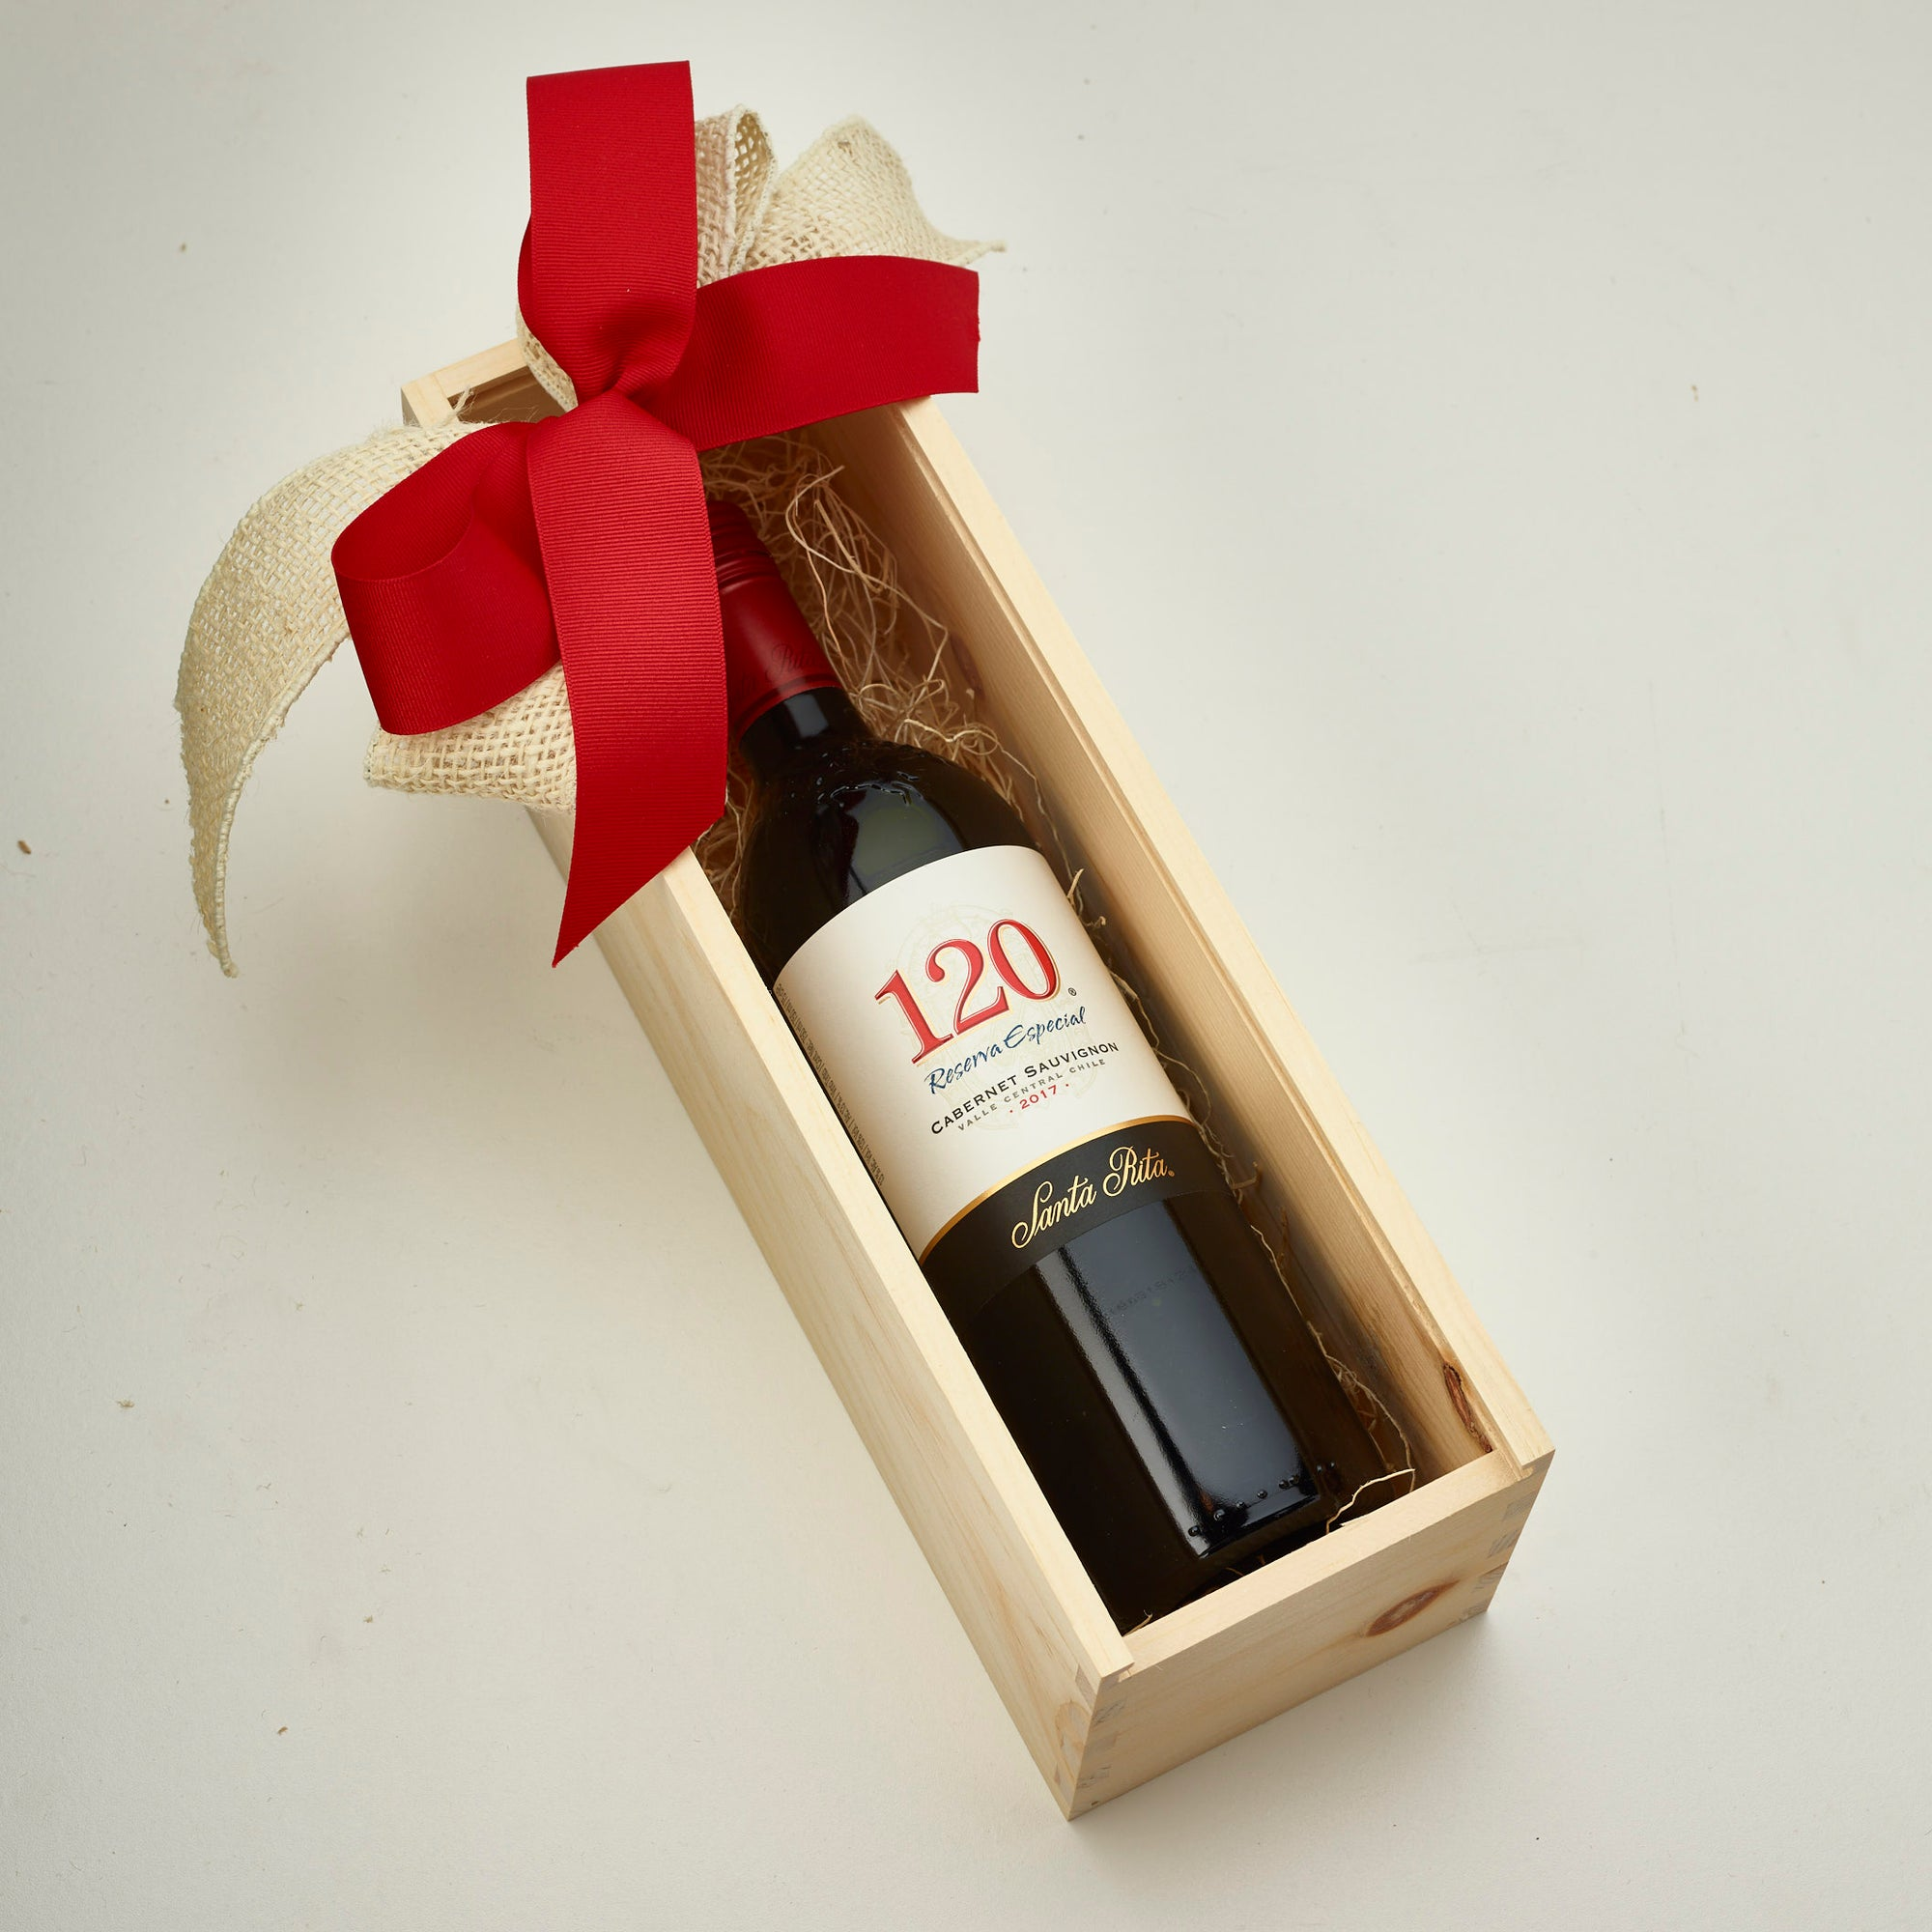 Wine Gift Baskets in Wooden Box